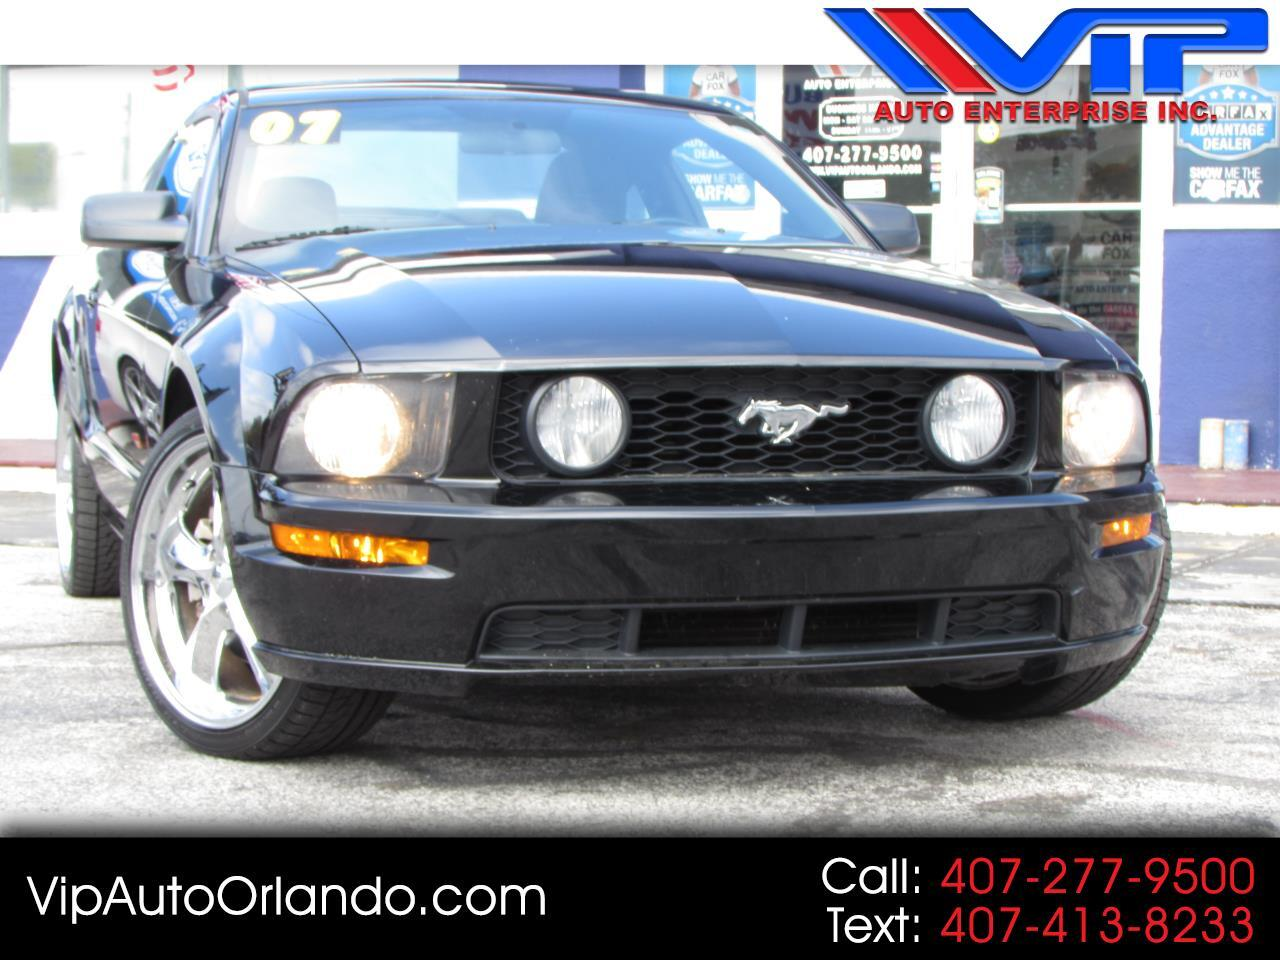 2007 Ford Mustang 2dr Cpe GT Premium